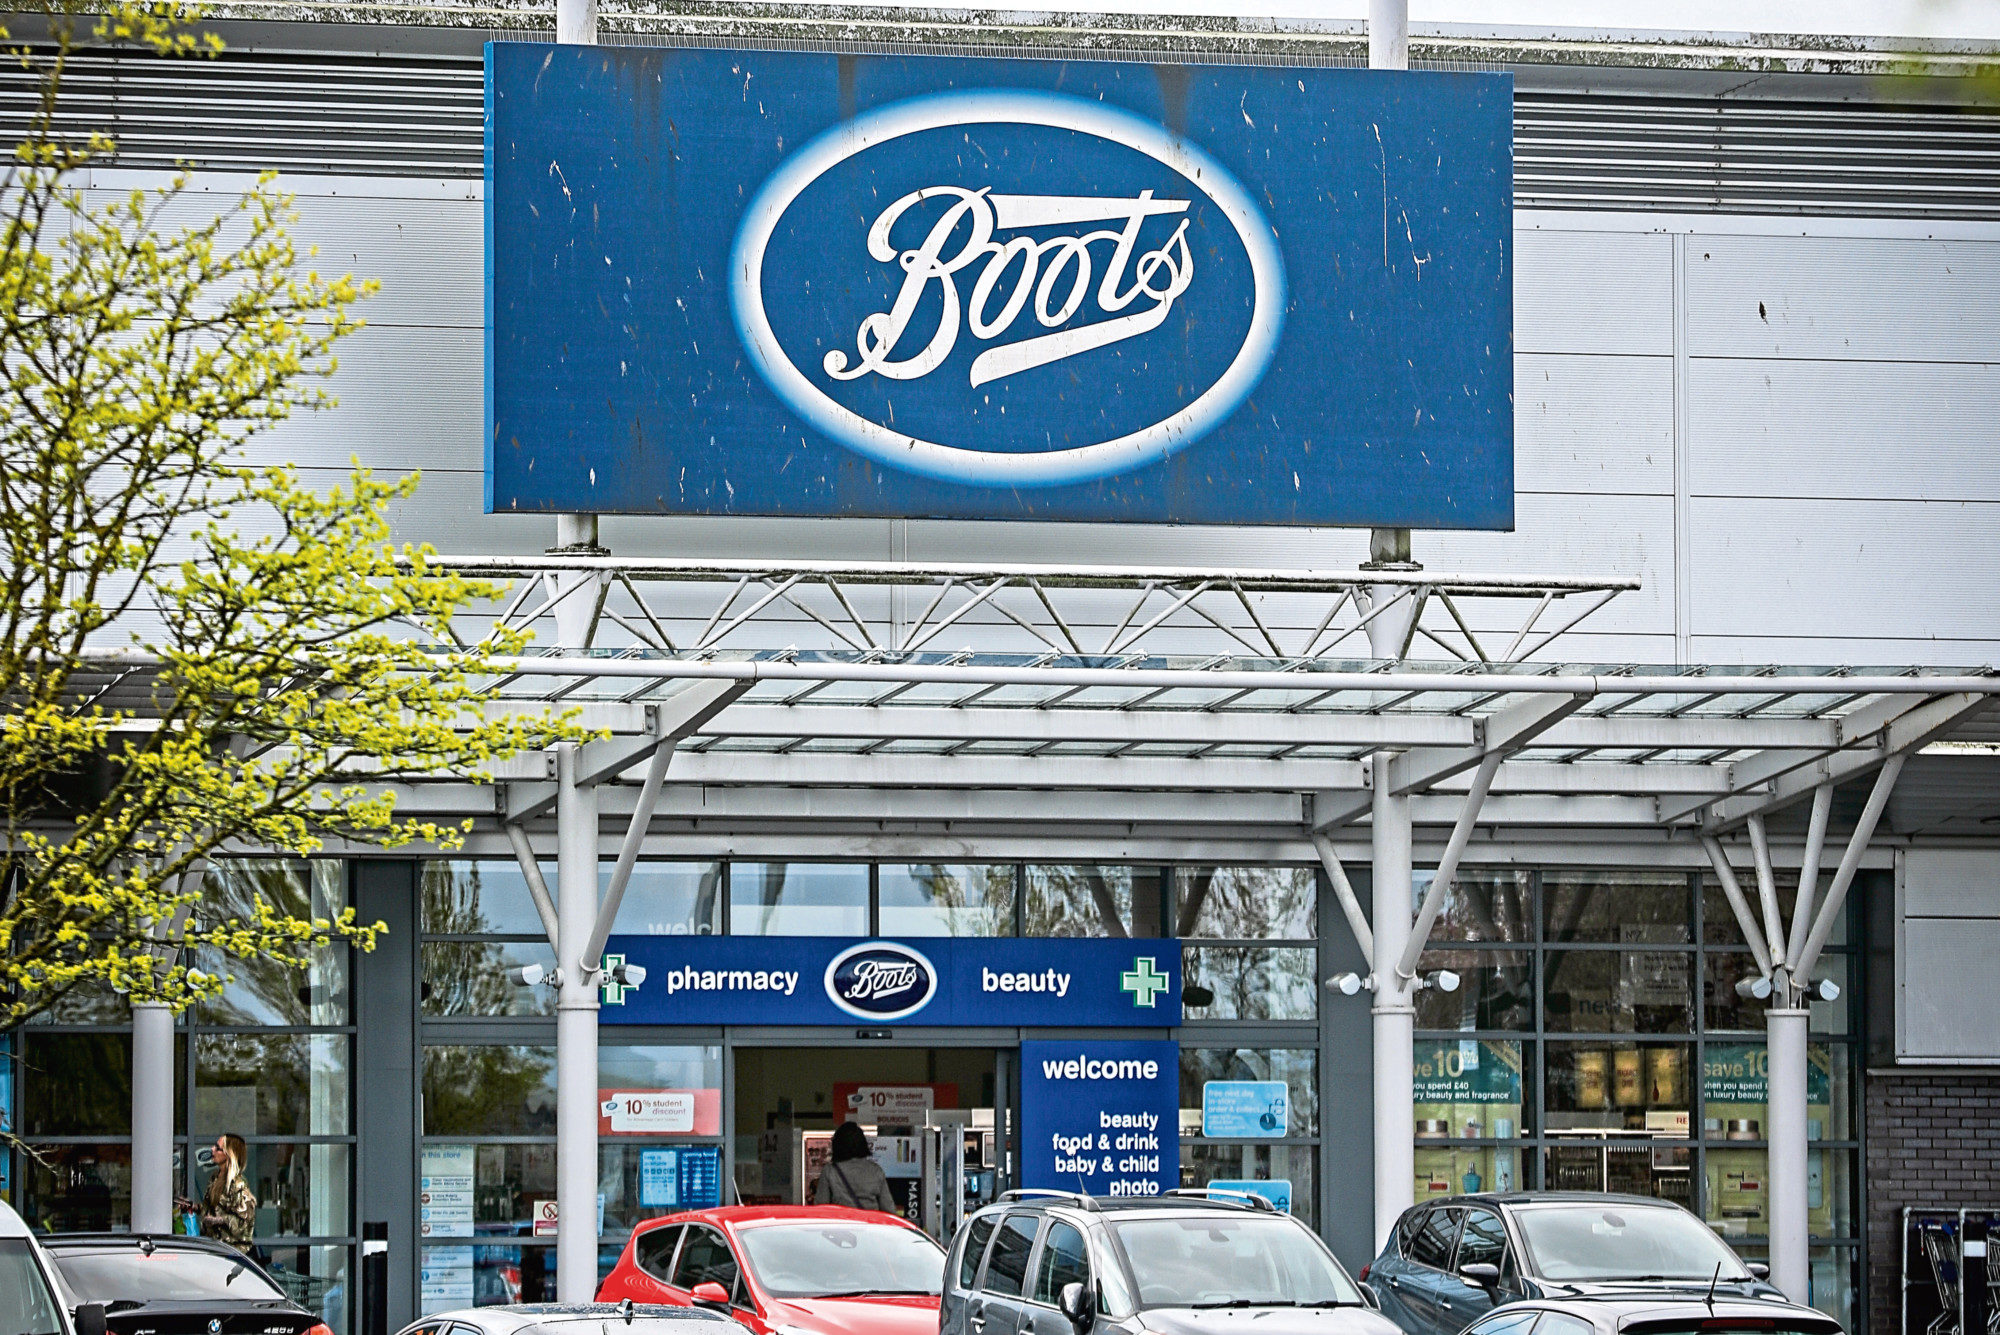 Boots at the Kingsway West Retail Park.